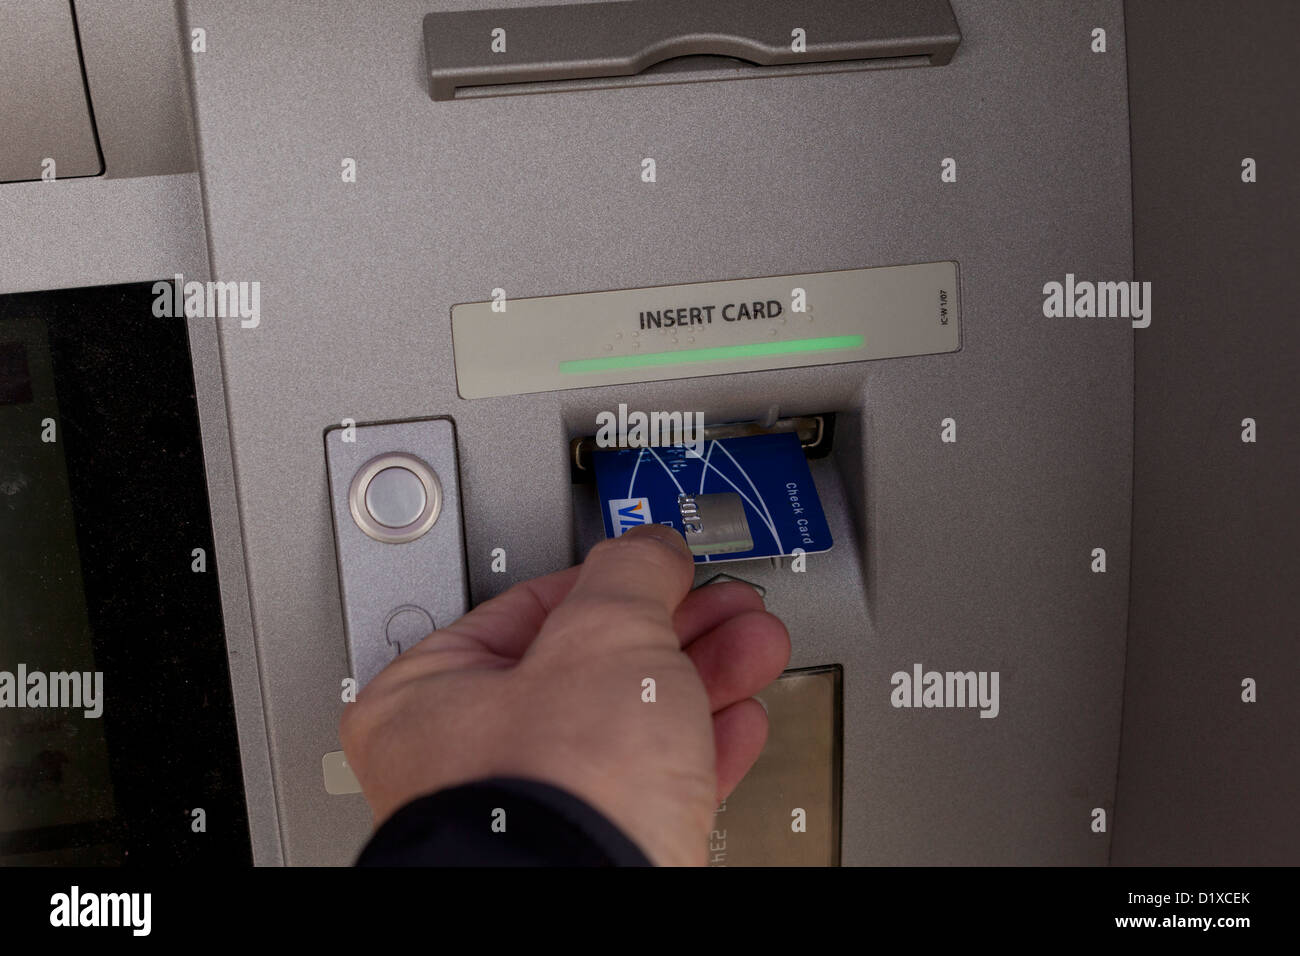 Man inserting bankcard into ATM - Stock Image